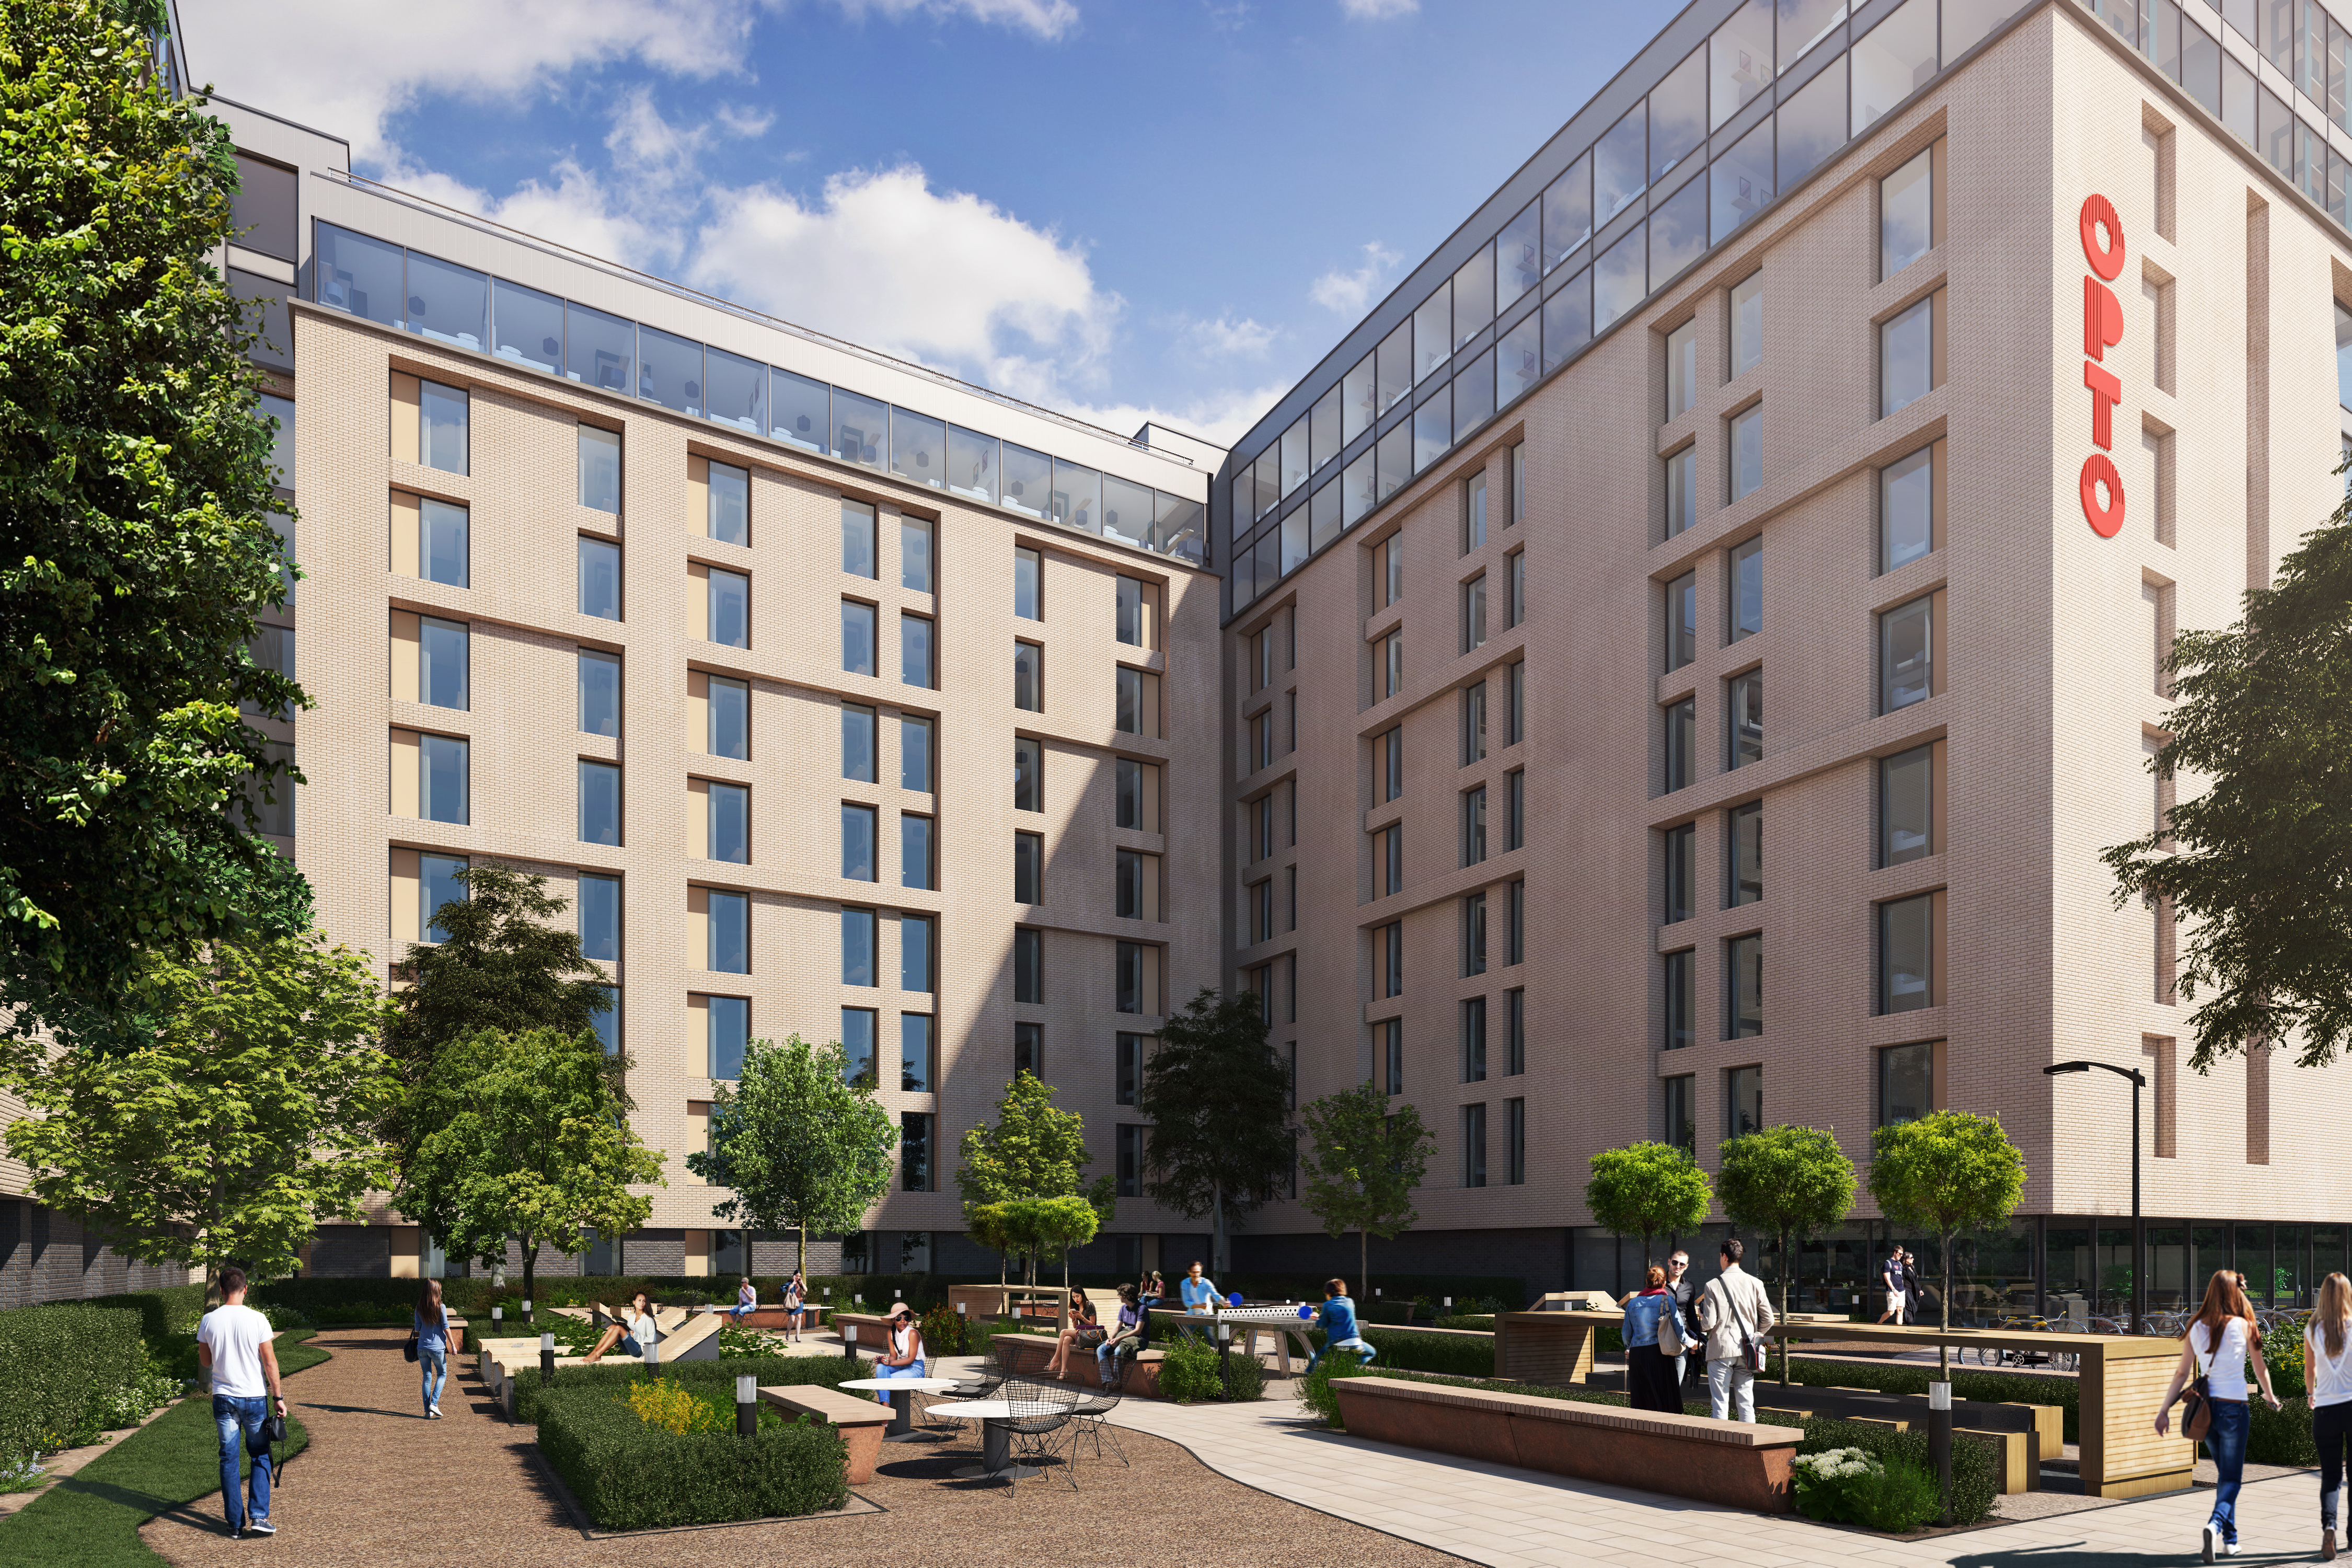 What makes student accommodation an attractive asset?